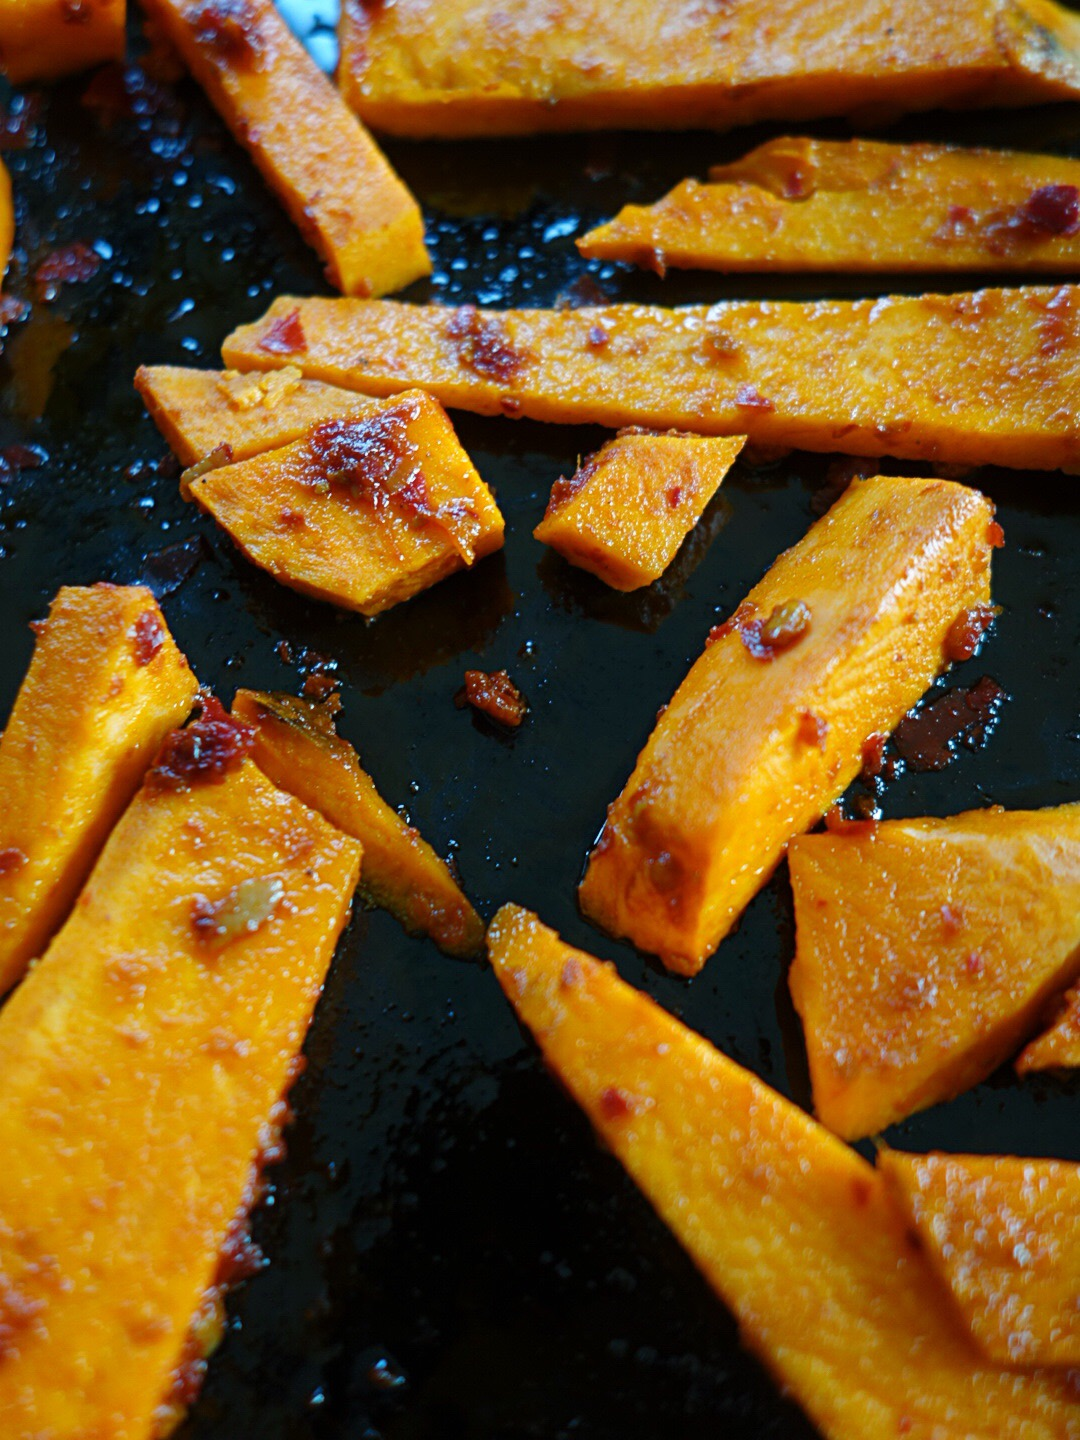 Rub a tbsp of rose harissa paste from  Belazu  plus a small glug of olive oil. Rub thoroughly all over the sweet potatoes and bake for 35 min at 175 c (350 F) flipping a few times.